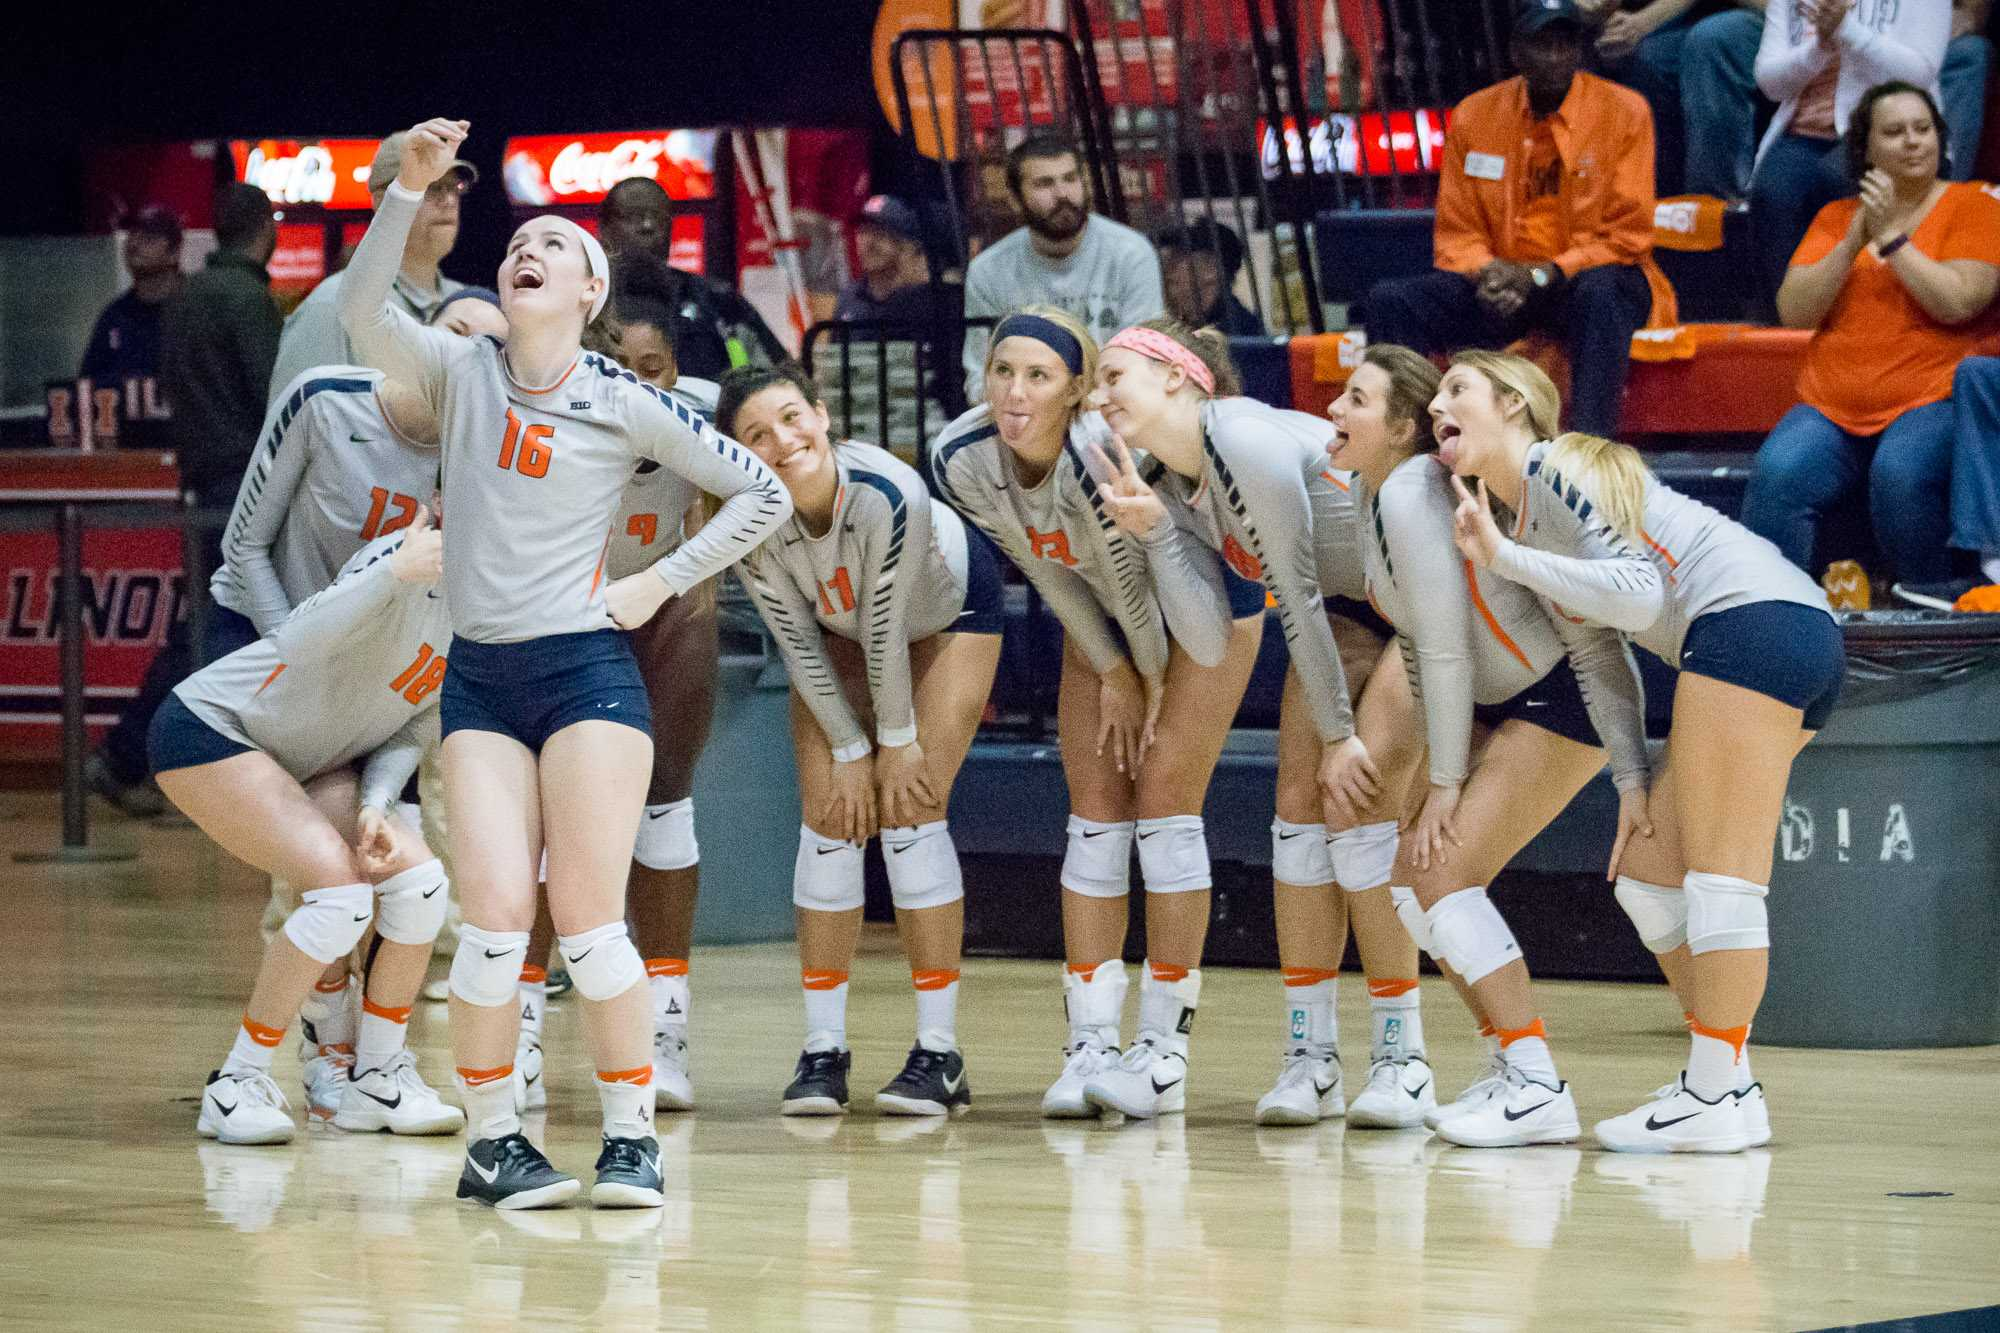 Illinois' McKenna Kelsay leads the bench in celebration by taking a selfie during the match against Northwestern at Huff Hall on Saturday, October 15. The Illini won 3-0.